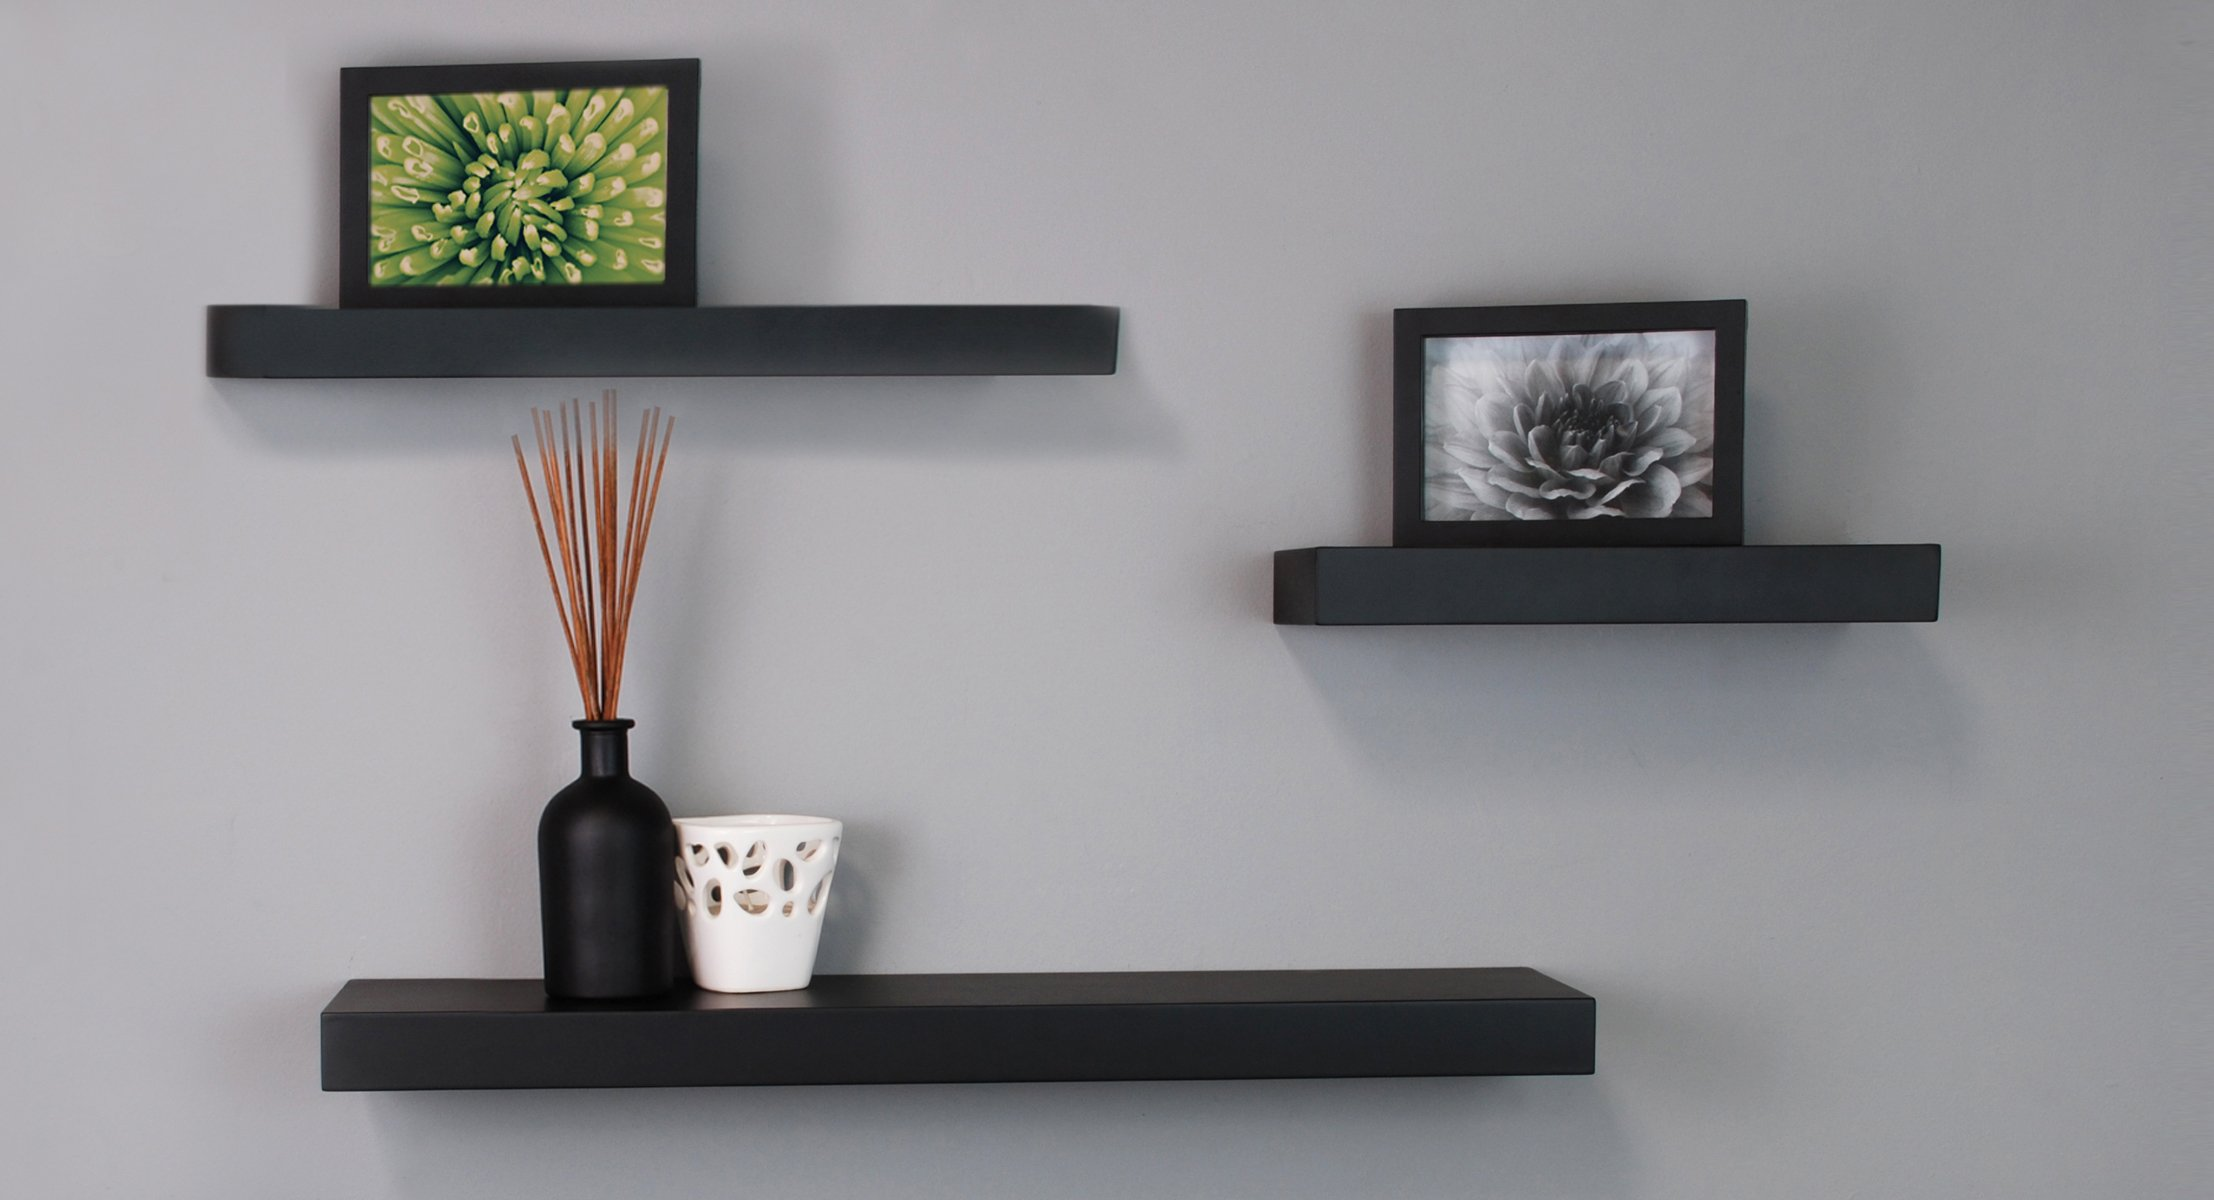 Black Floating Wall Shelves by nexxt